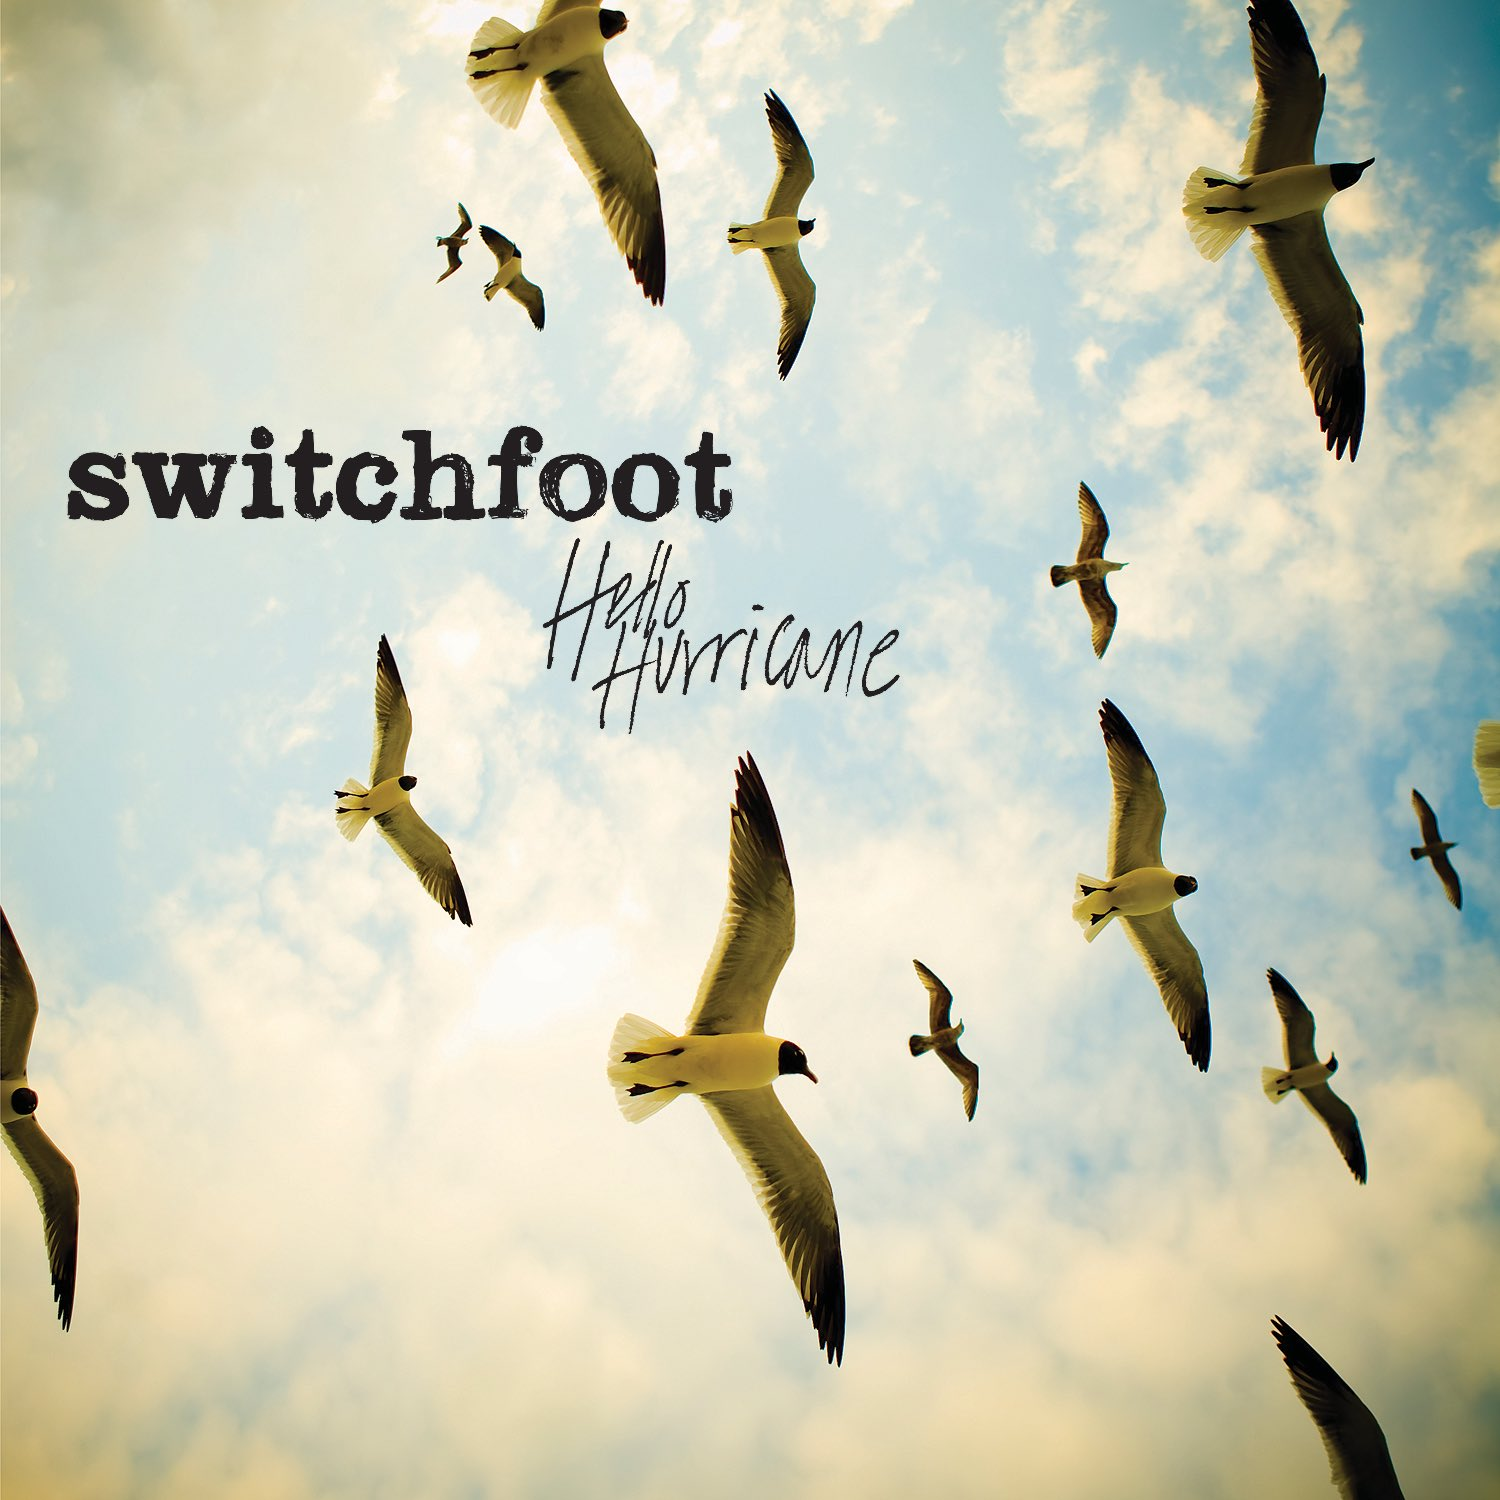 "Switchfoot on Twitter: ""Hello Hurricane is WHERE THE LIGHT SHINES ..."